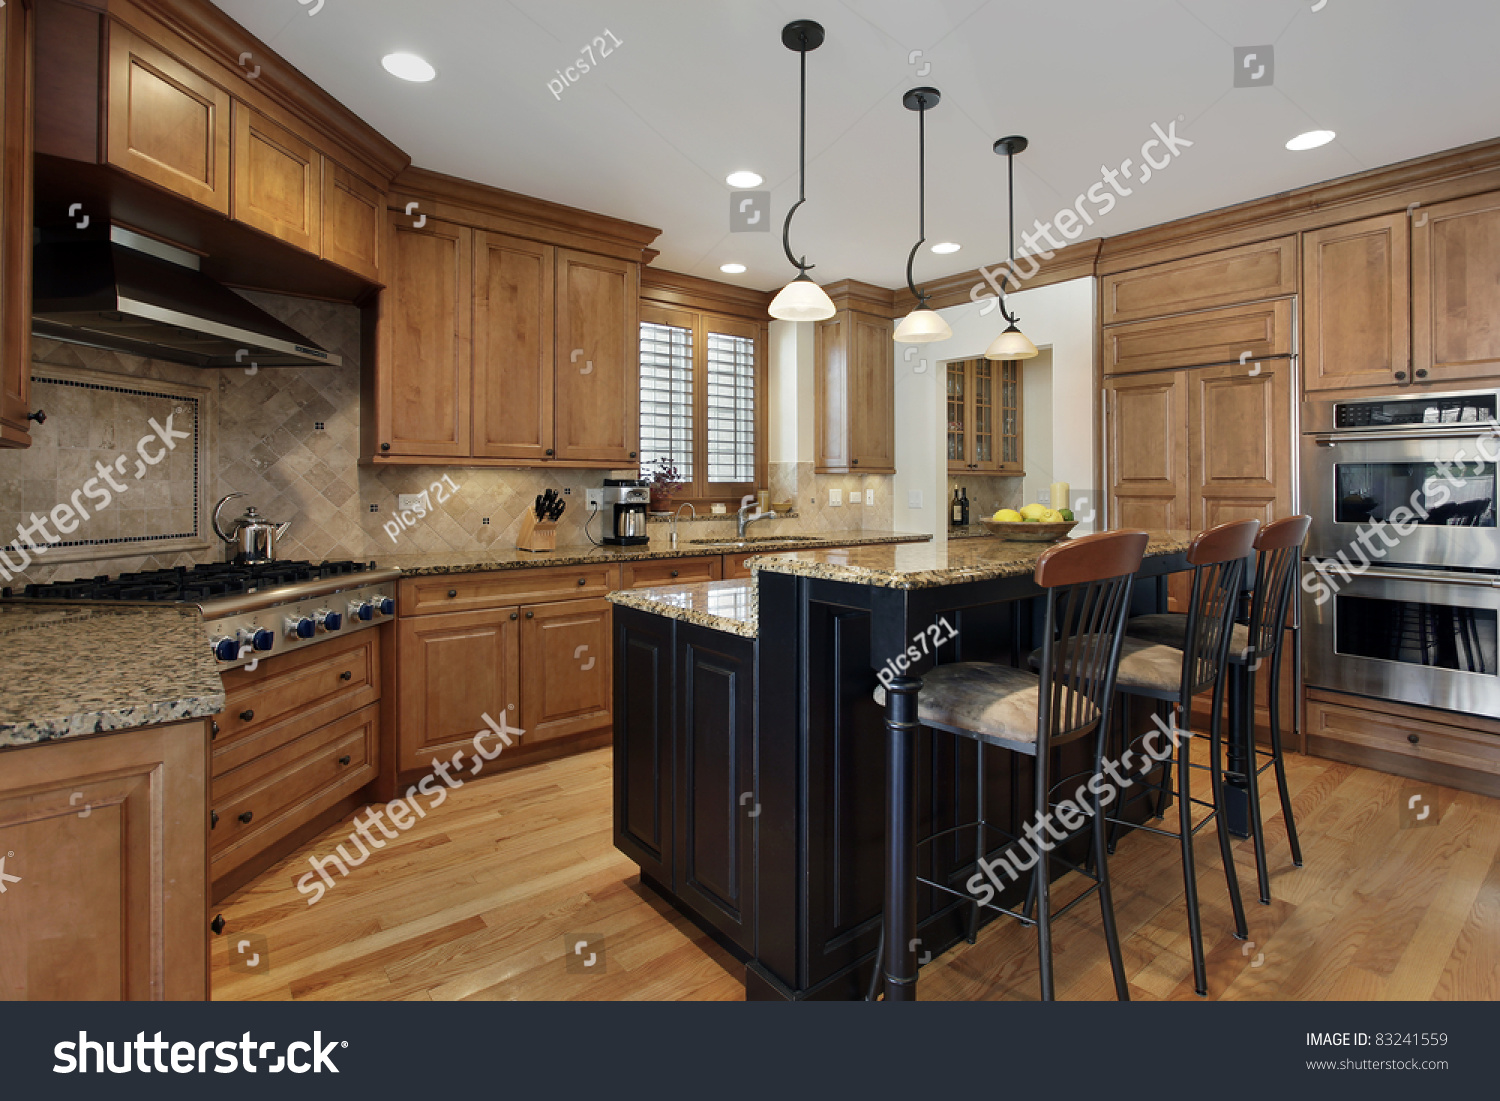 Granite Island Kitchen Luxury Kitchen With Granite Island And Wood Cabinetry Stock Photo